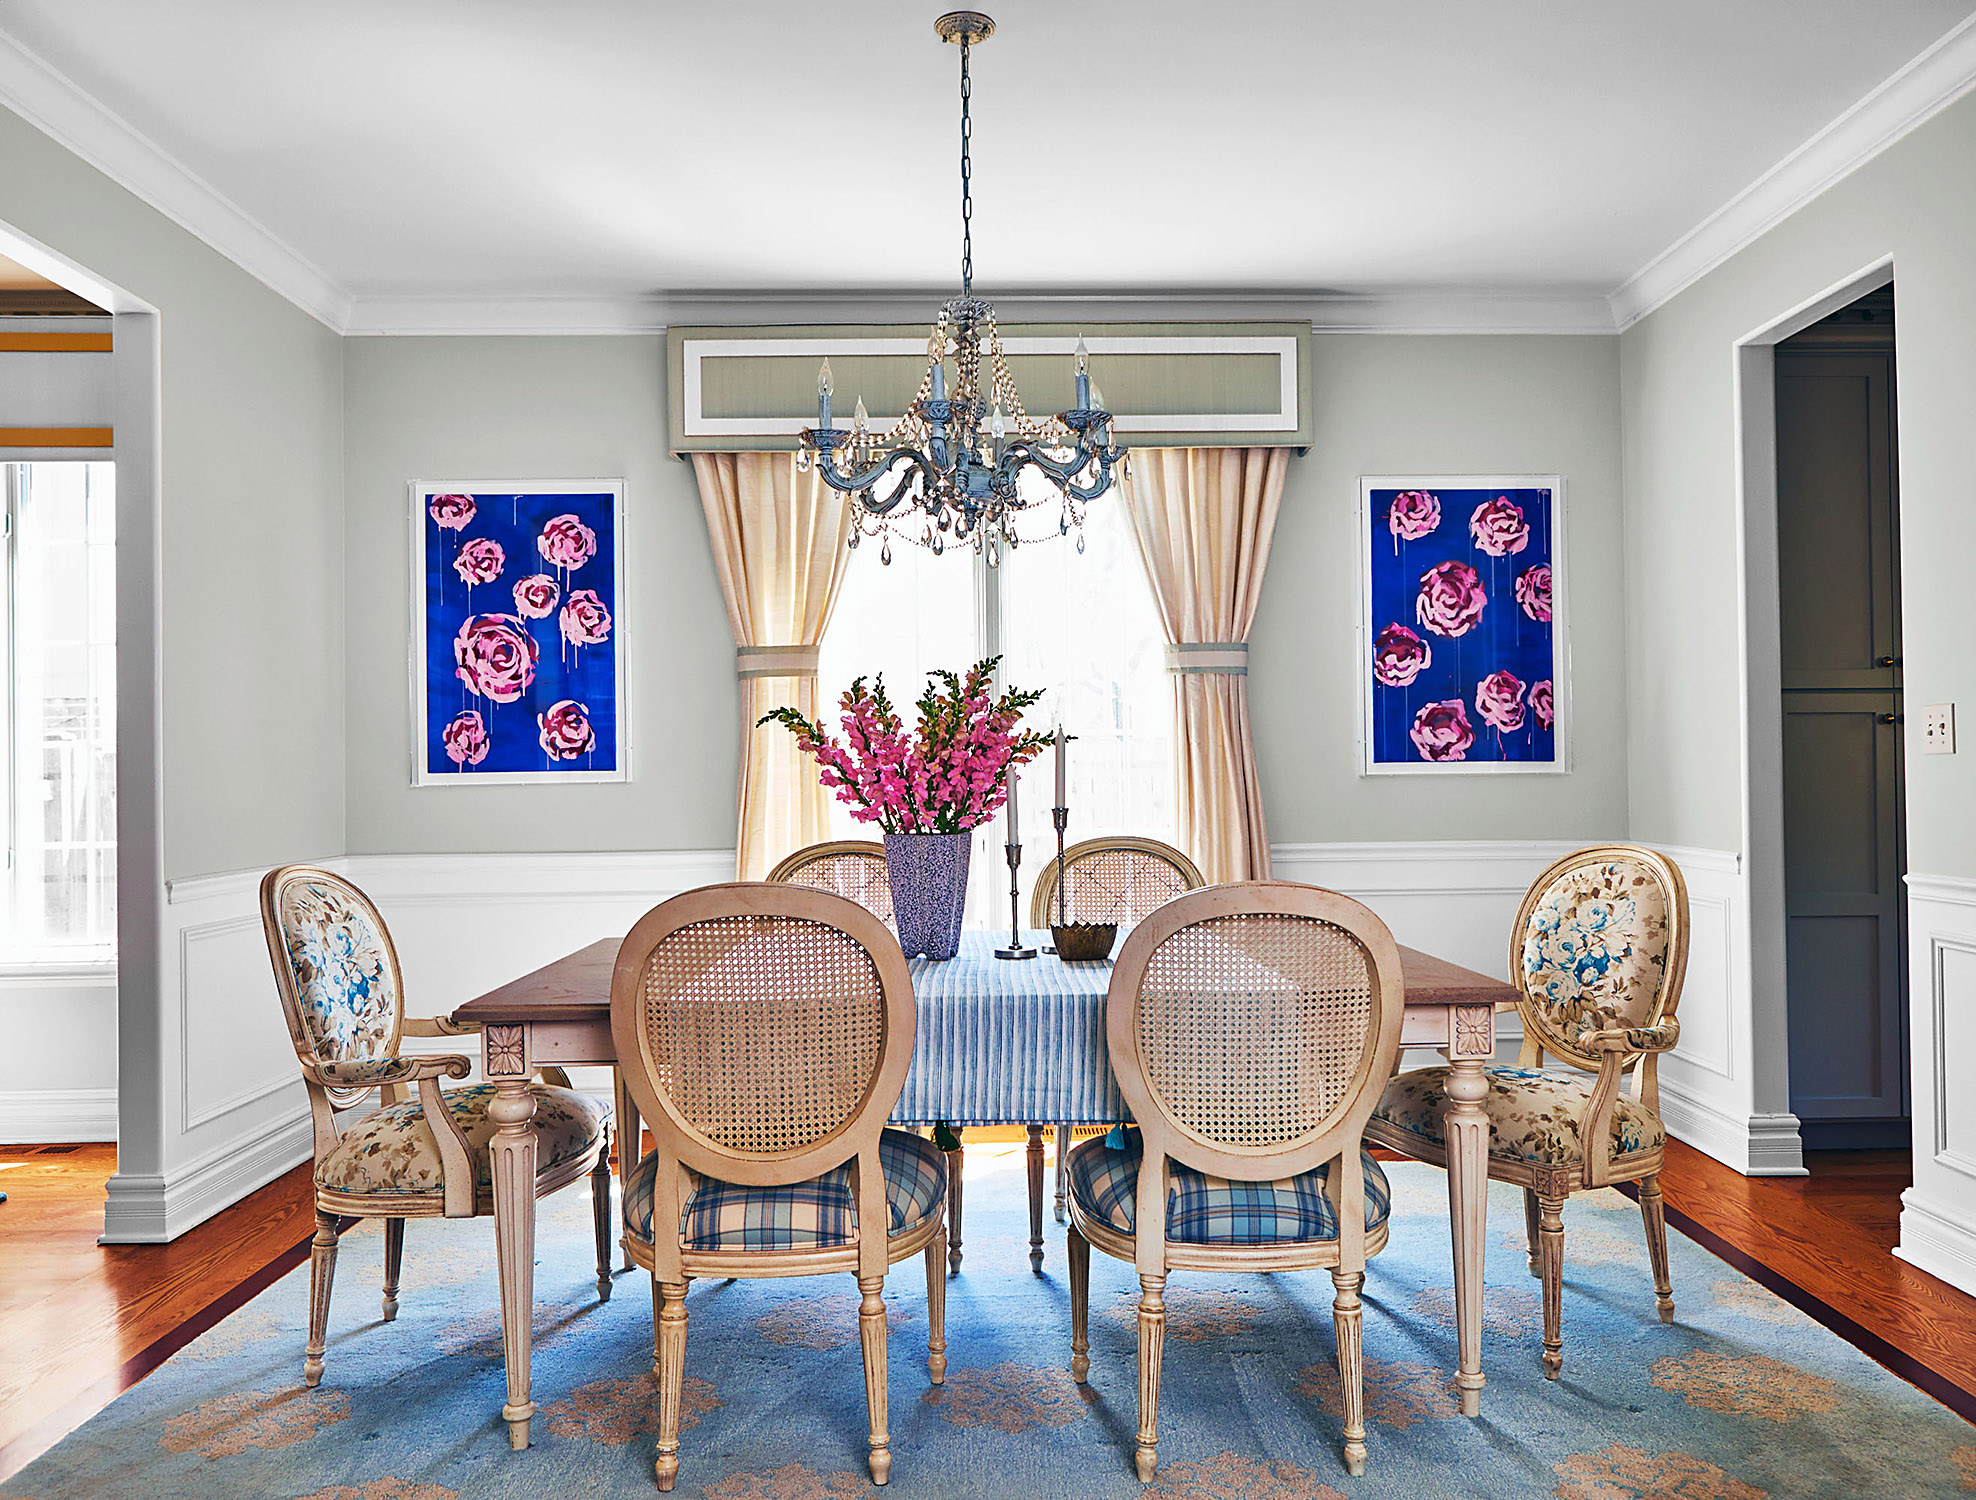 Kristi Kohuts dining room with floral canvases